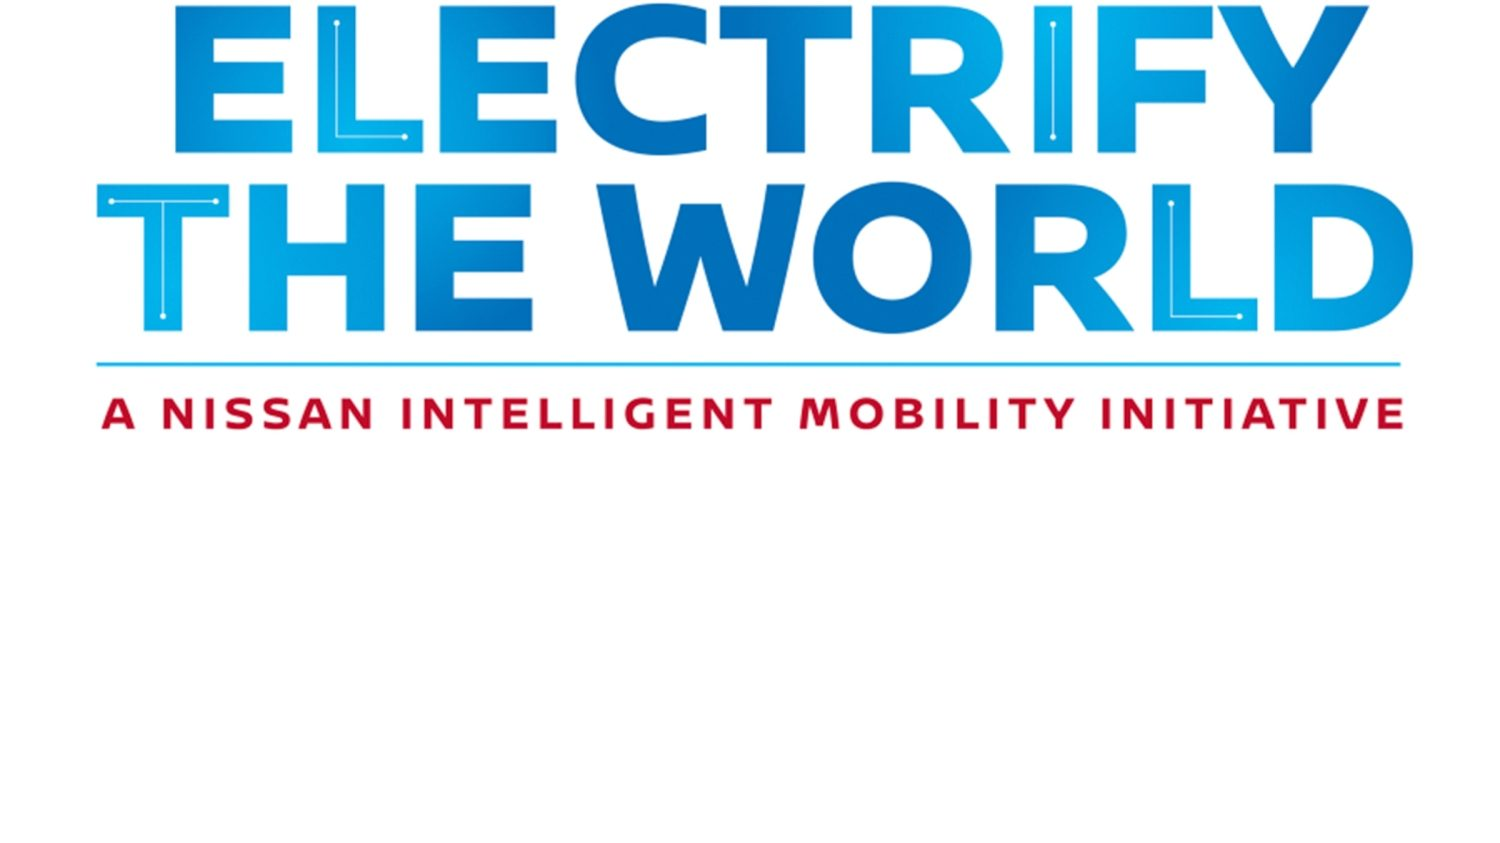 Nye Nissan e-NV200 Evalia, electrify the world